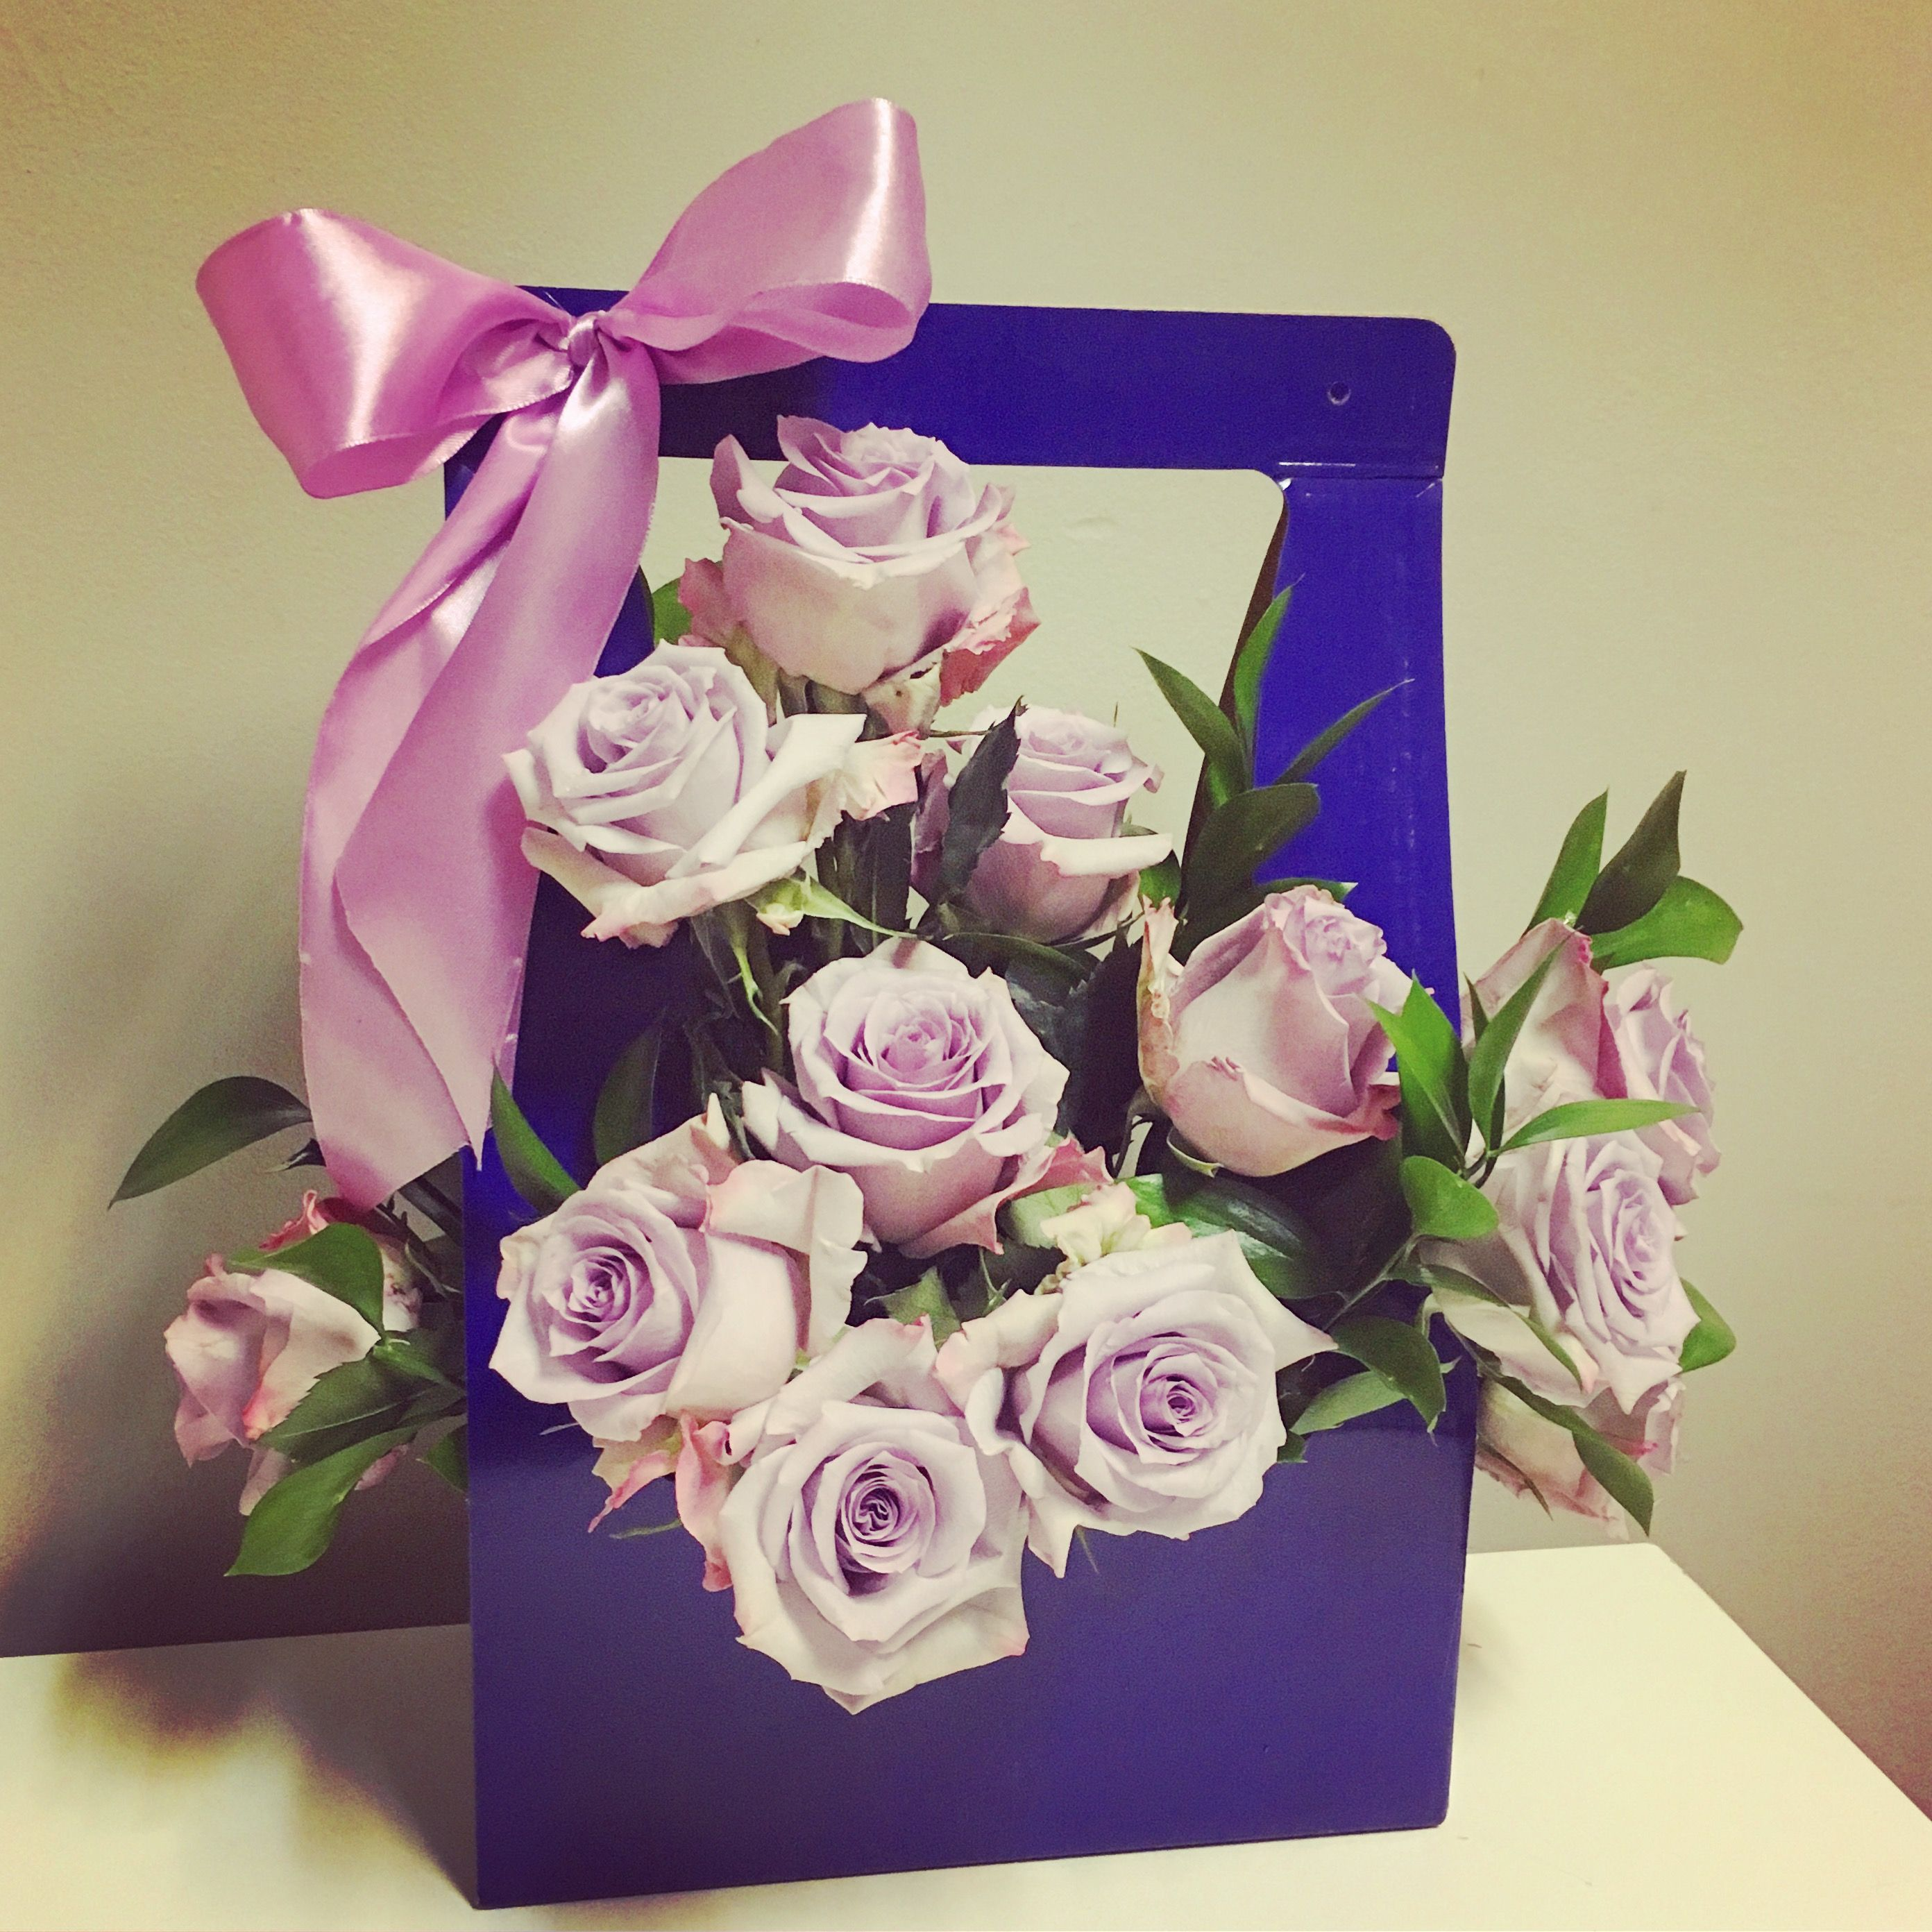 Roses In A Box Flowers In A Box Chicago Flowers Delivery Chicago Www Flowersbygeo Com Valentines Flower Delivery Flower Delivery Chicago Best Flower Delivery